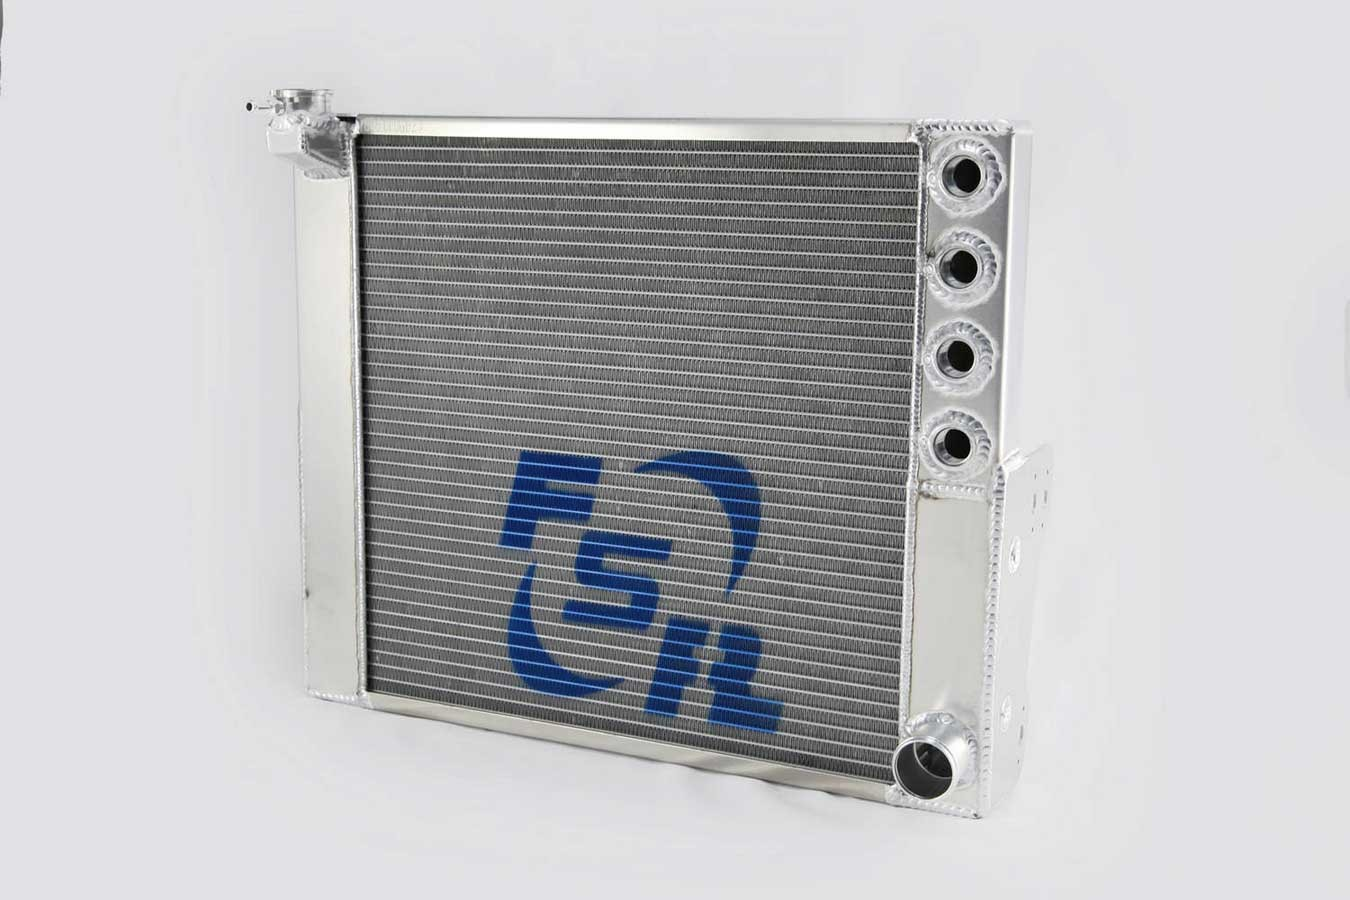 FSR Racing 6291 Radiator, Sprint Cross Flow, 22 in W x 20 in H, Passenger Side Inlet, Passenger Side Outlet, Aluminum, Natural, Sprint Car, Each